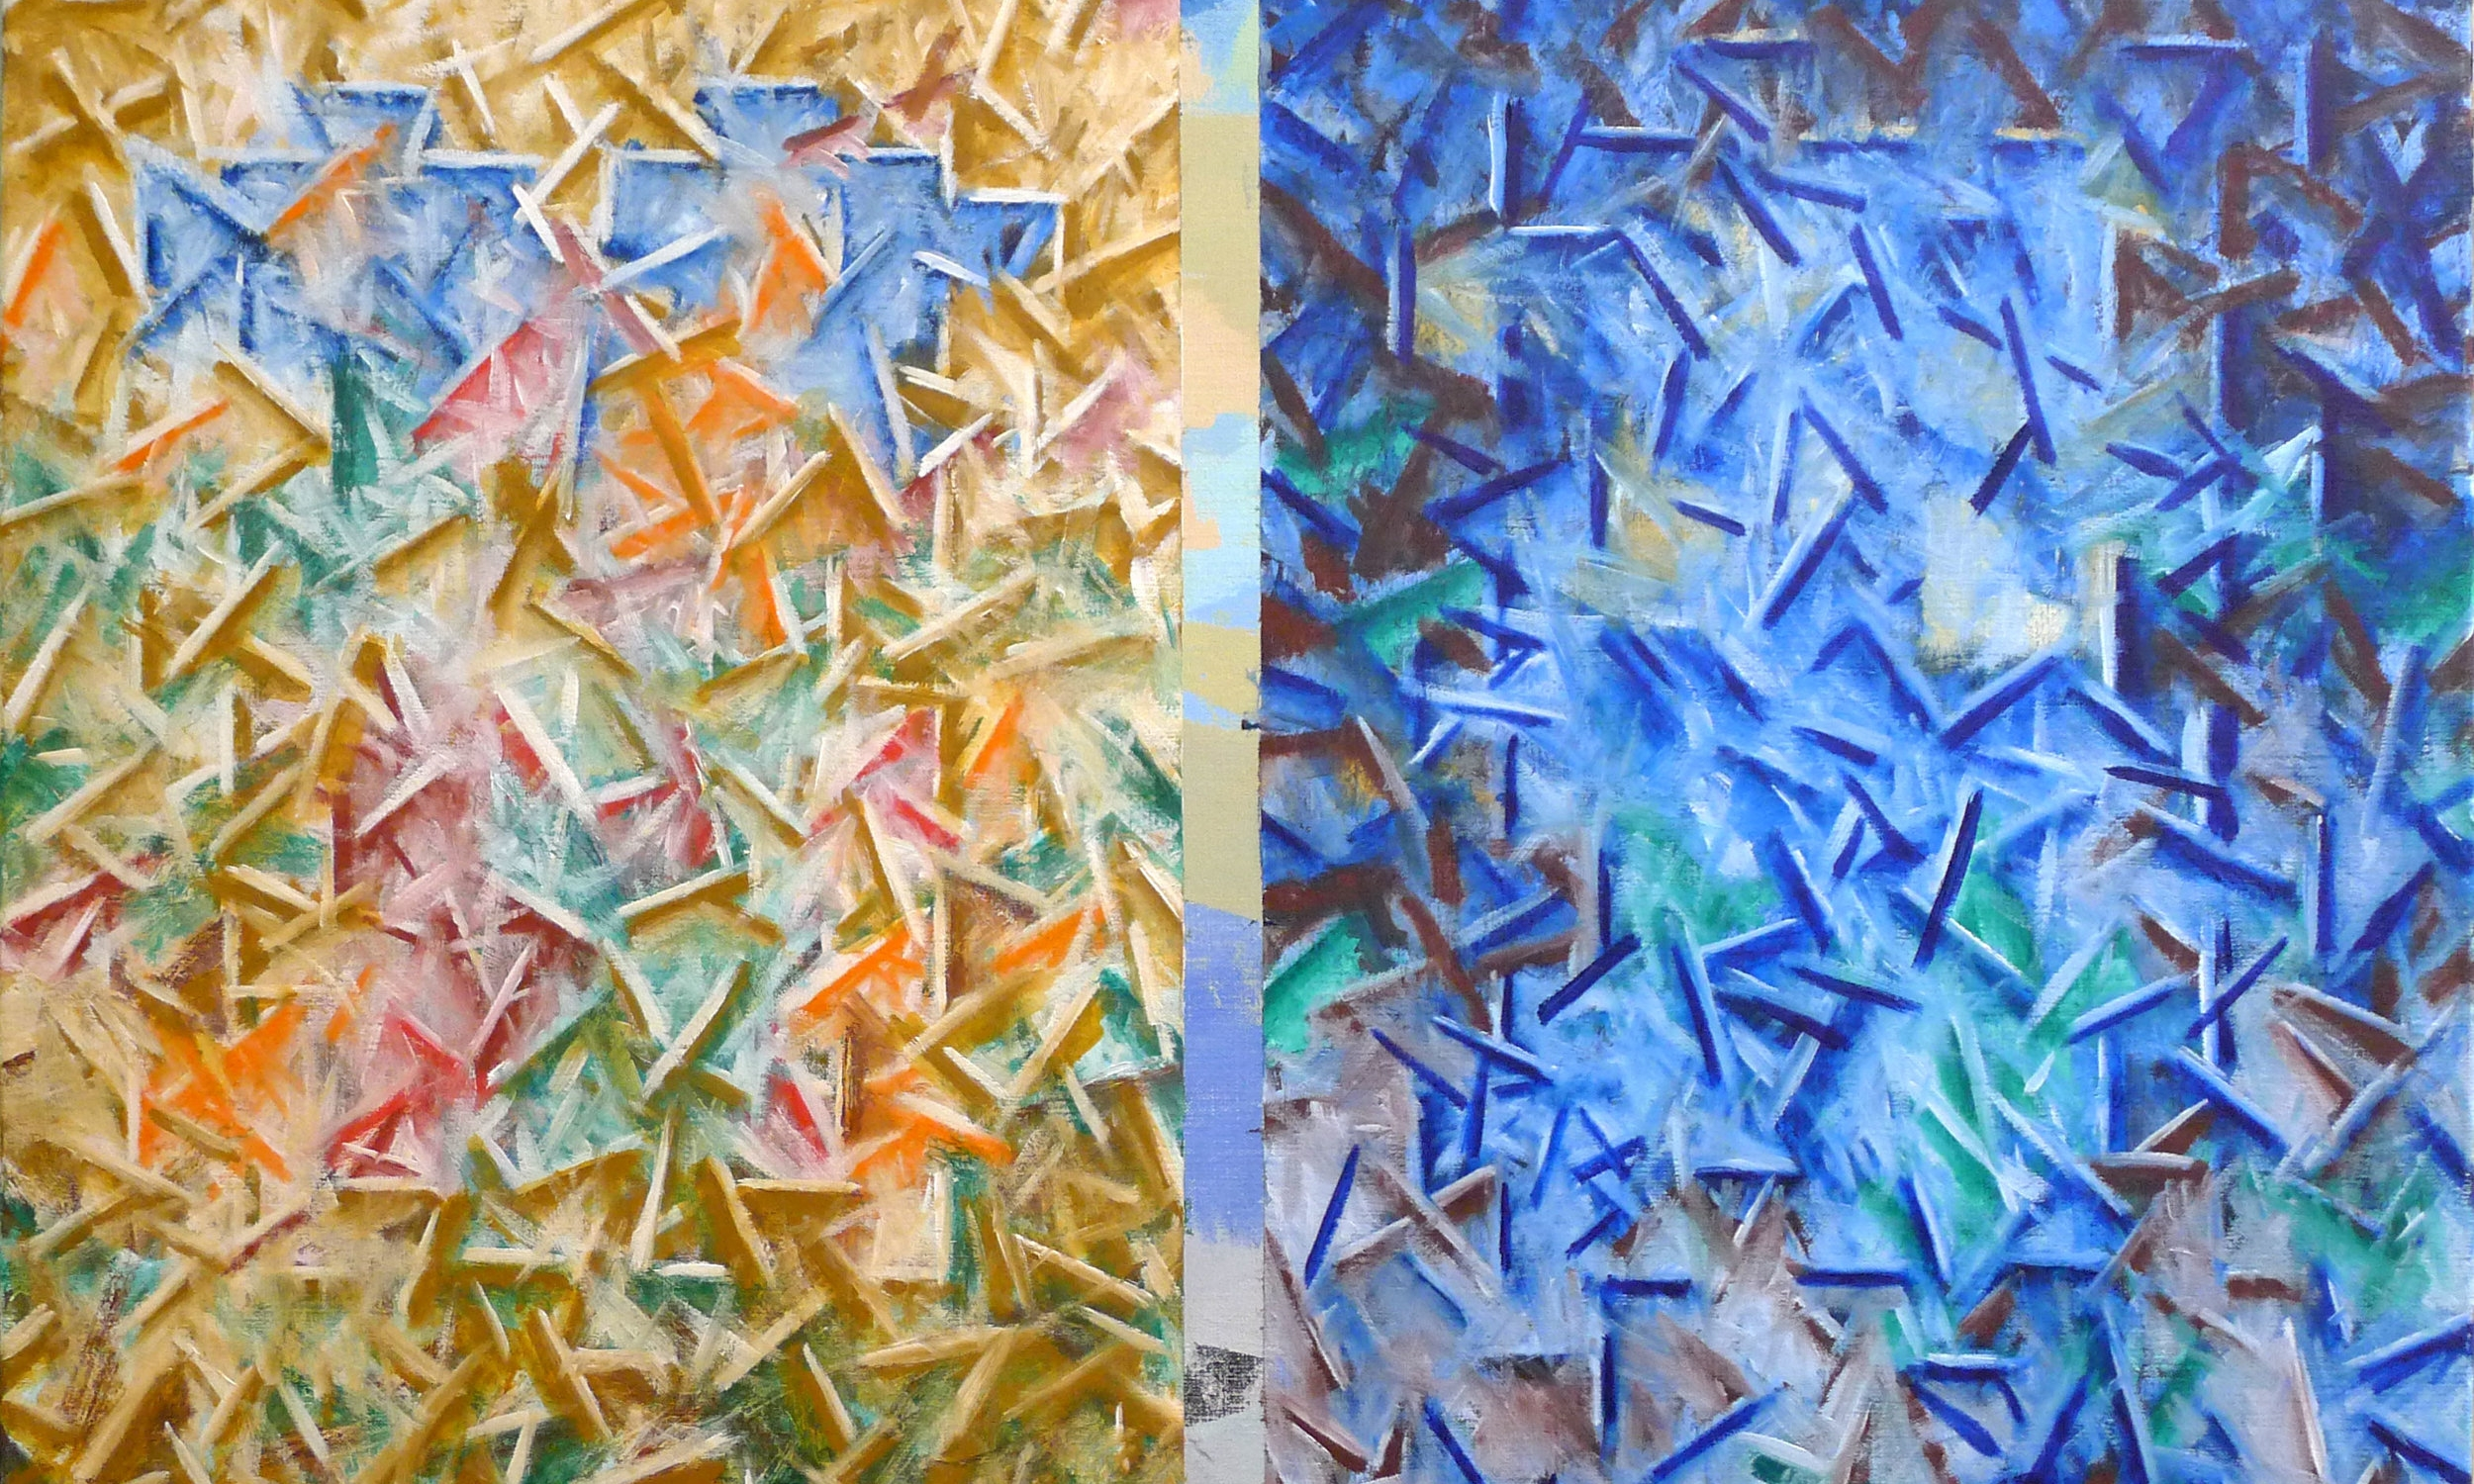 #26-Day-And-Night-Shapes,-2009,-Oil,-18X24in.-P1030282.jpg